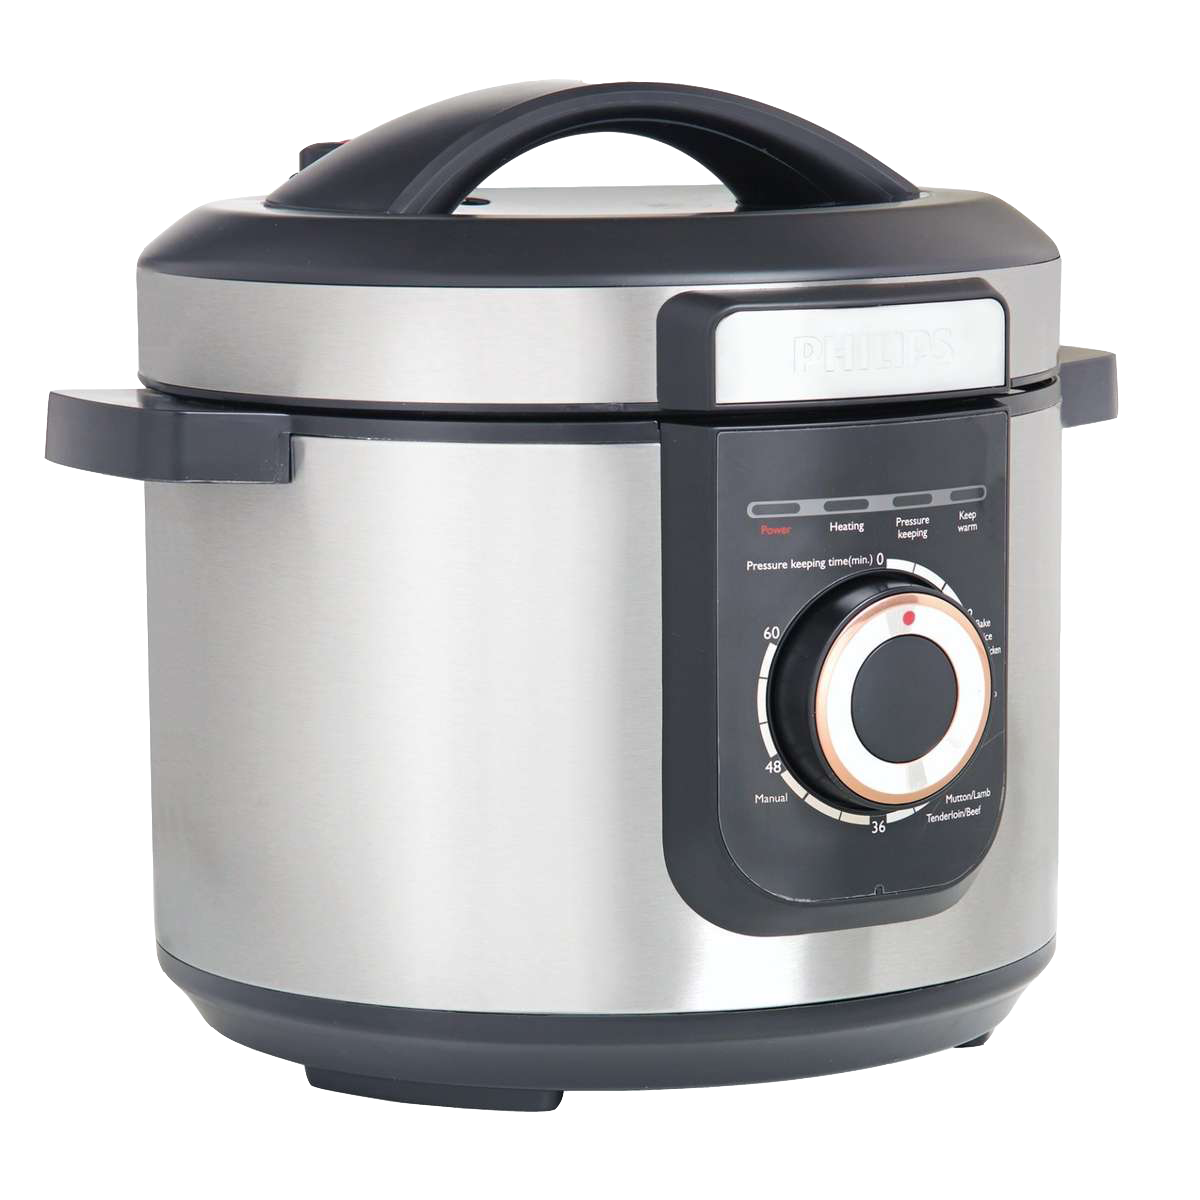 Philips Electric Pressure Cooker Hd2105 46 Newappliances